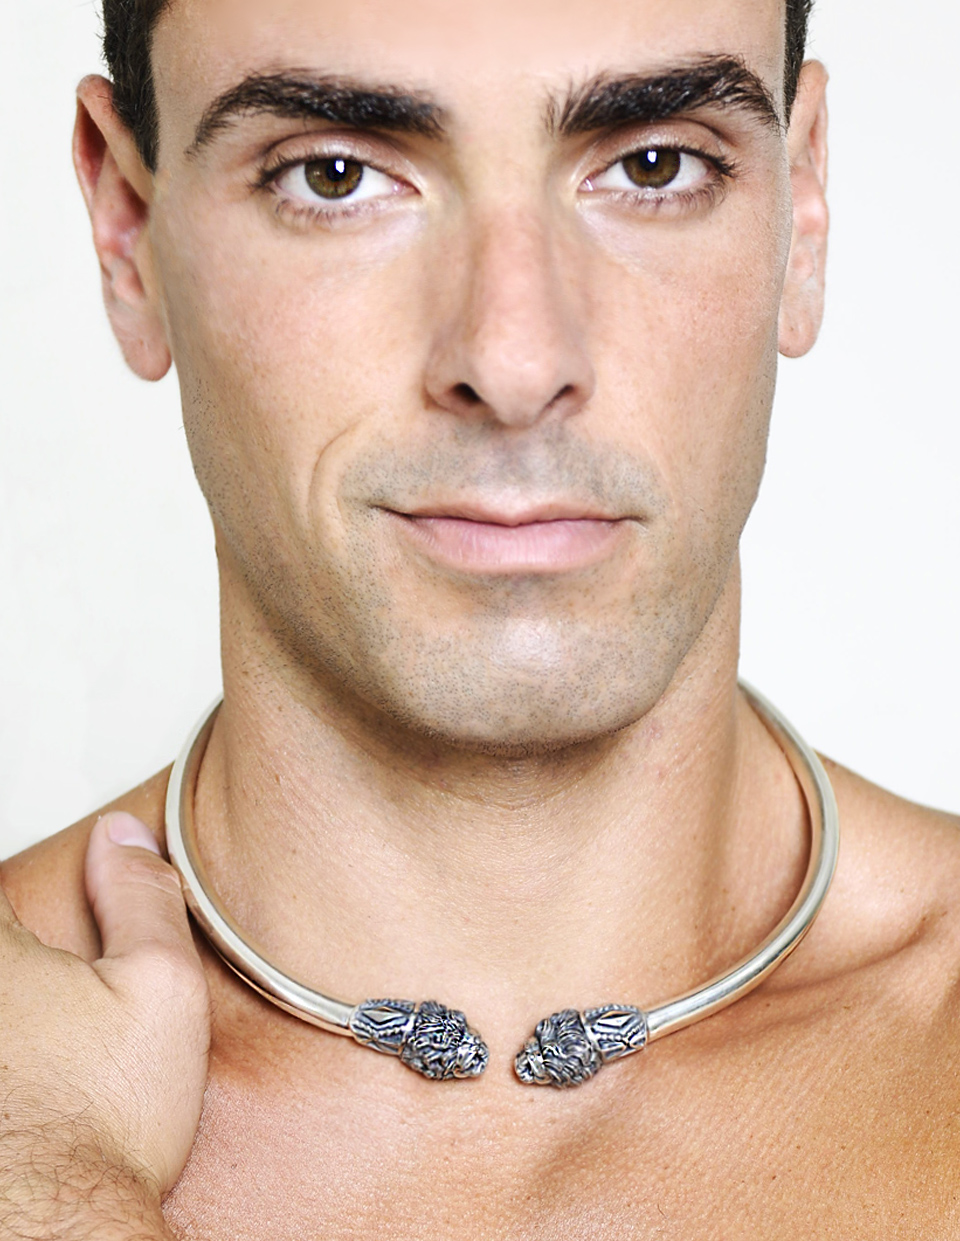 Men's Lion Necklace in Silver. Design by Esculpta. Model Jeremy Bilding